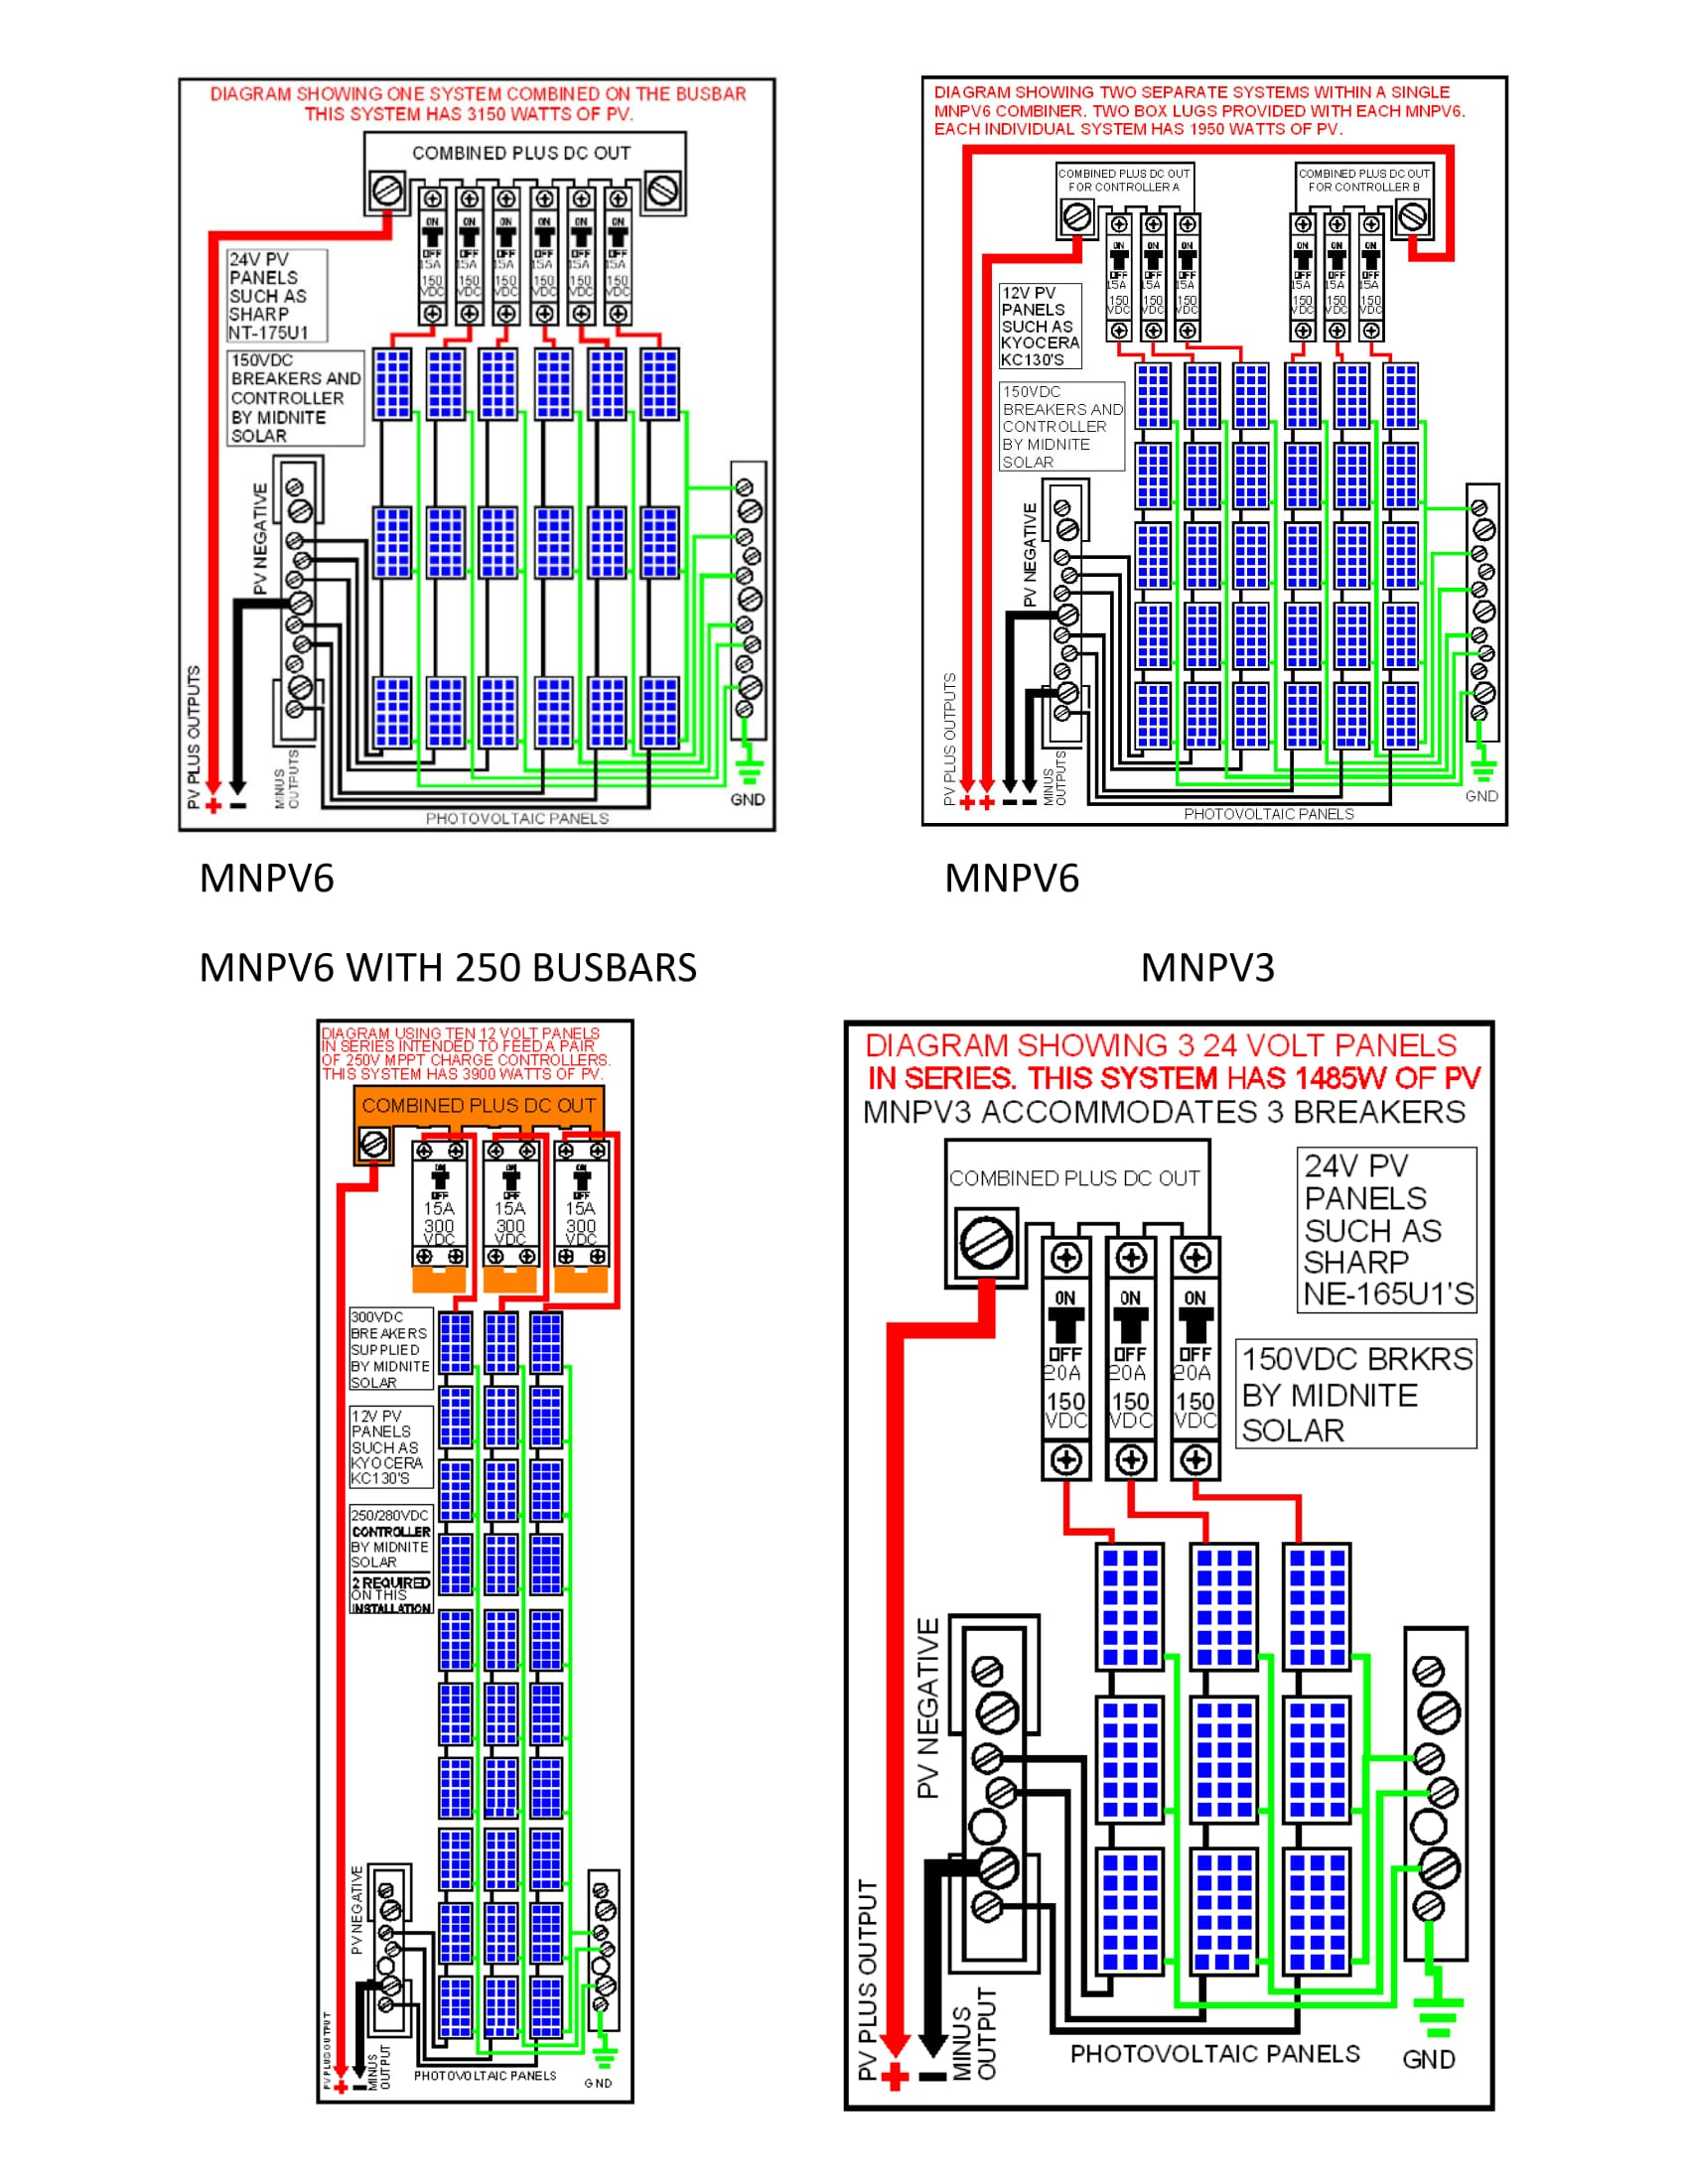 MidNite_PV_Combiners_explained_w_diagrams-7  Amp Wiring Diagram on